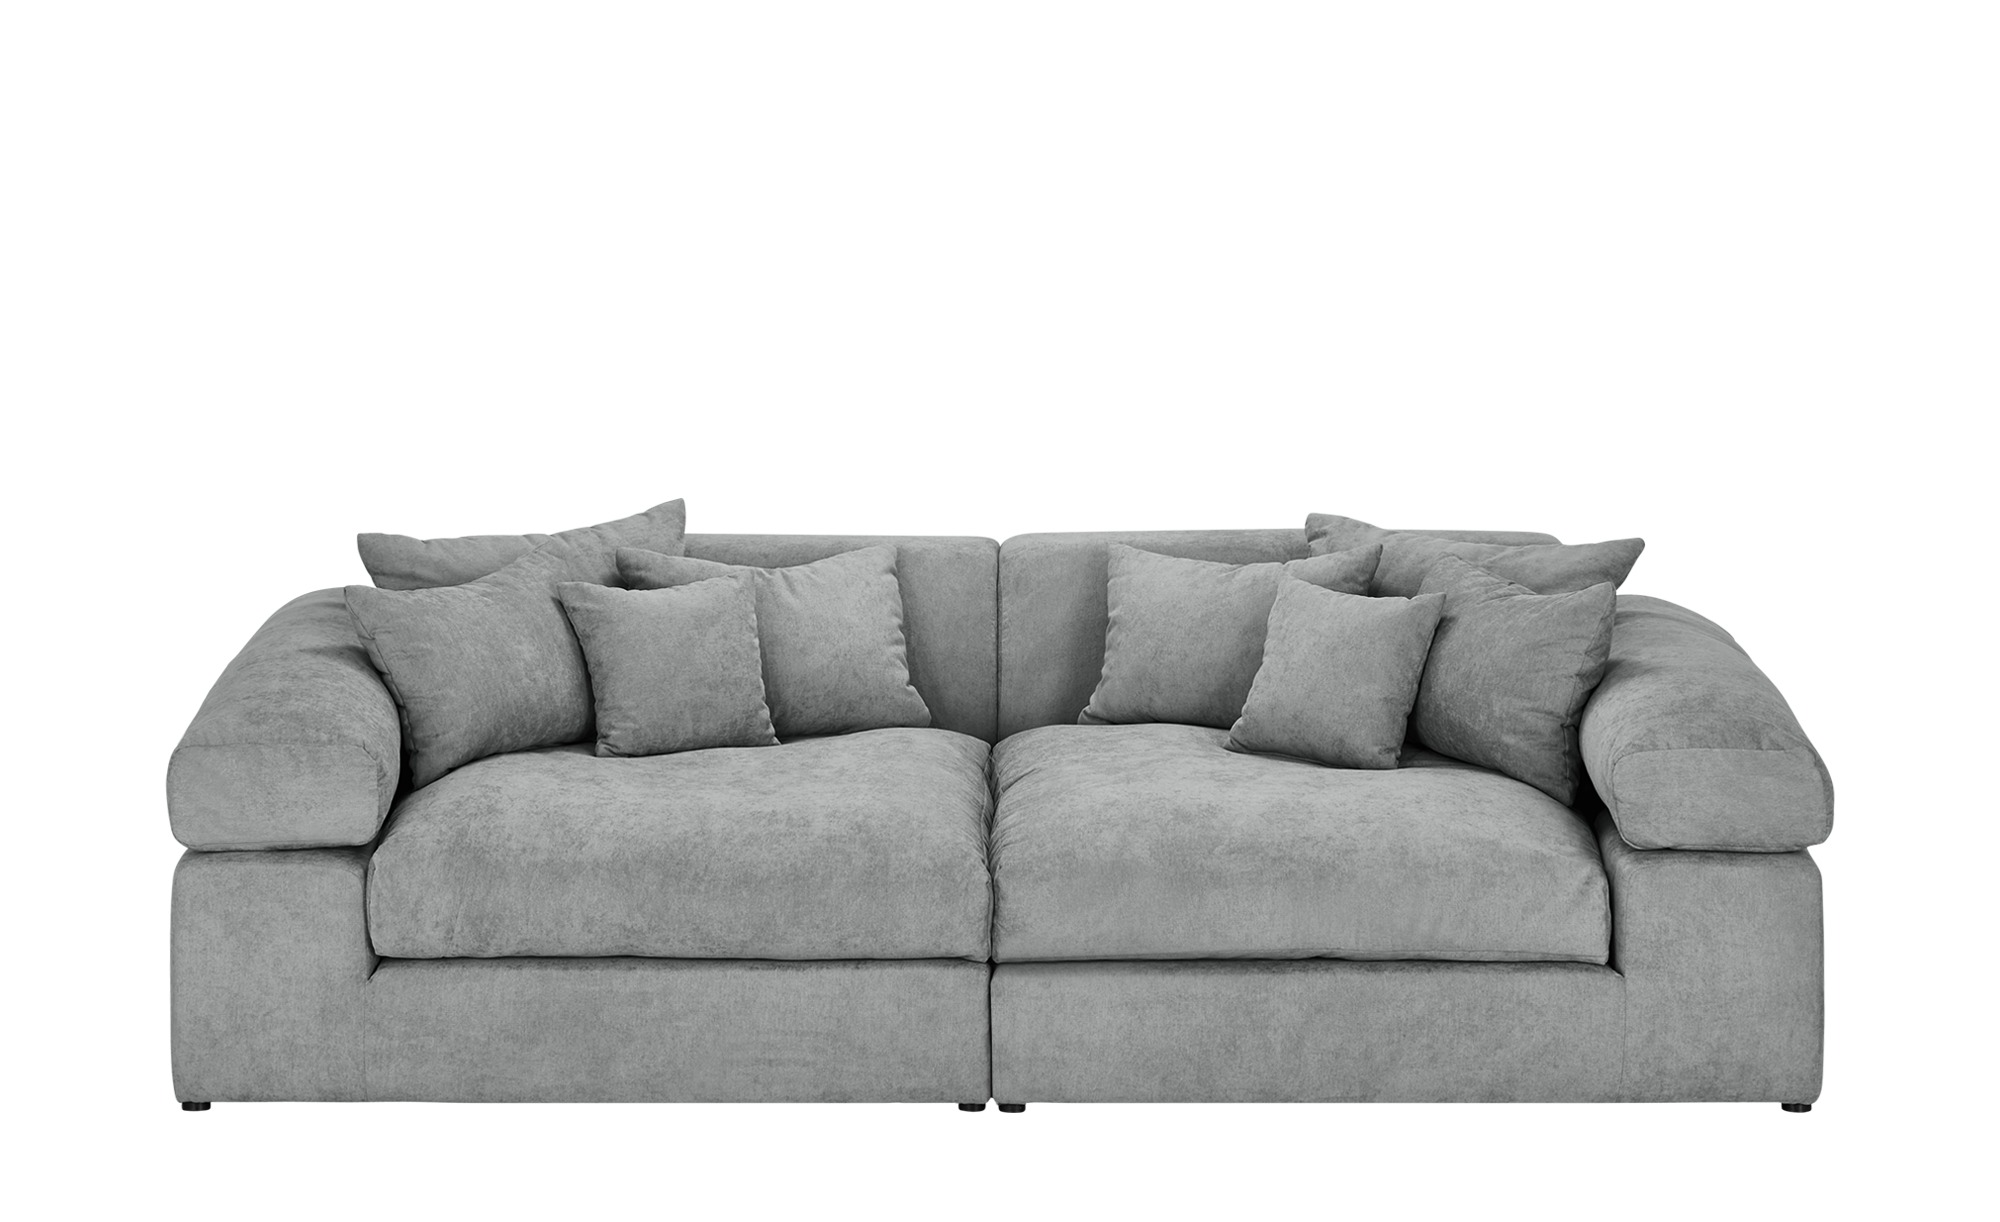 Big Sofa Ecksofa Smart Big Sofa Lianea | Silbergrau | Möbel Höffner